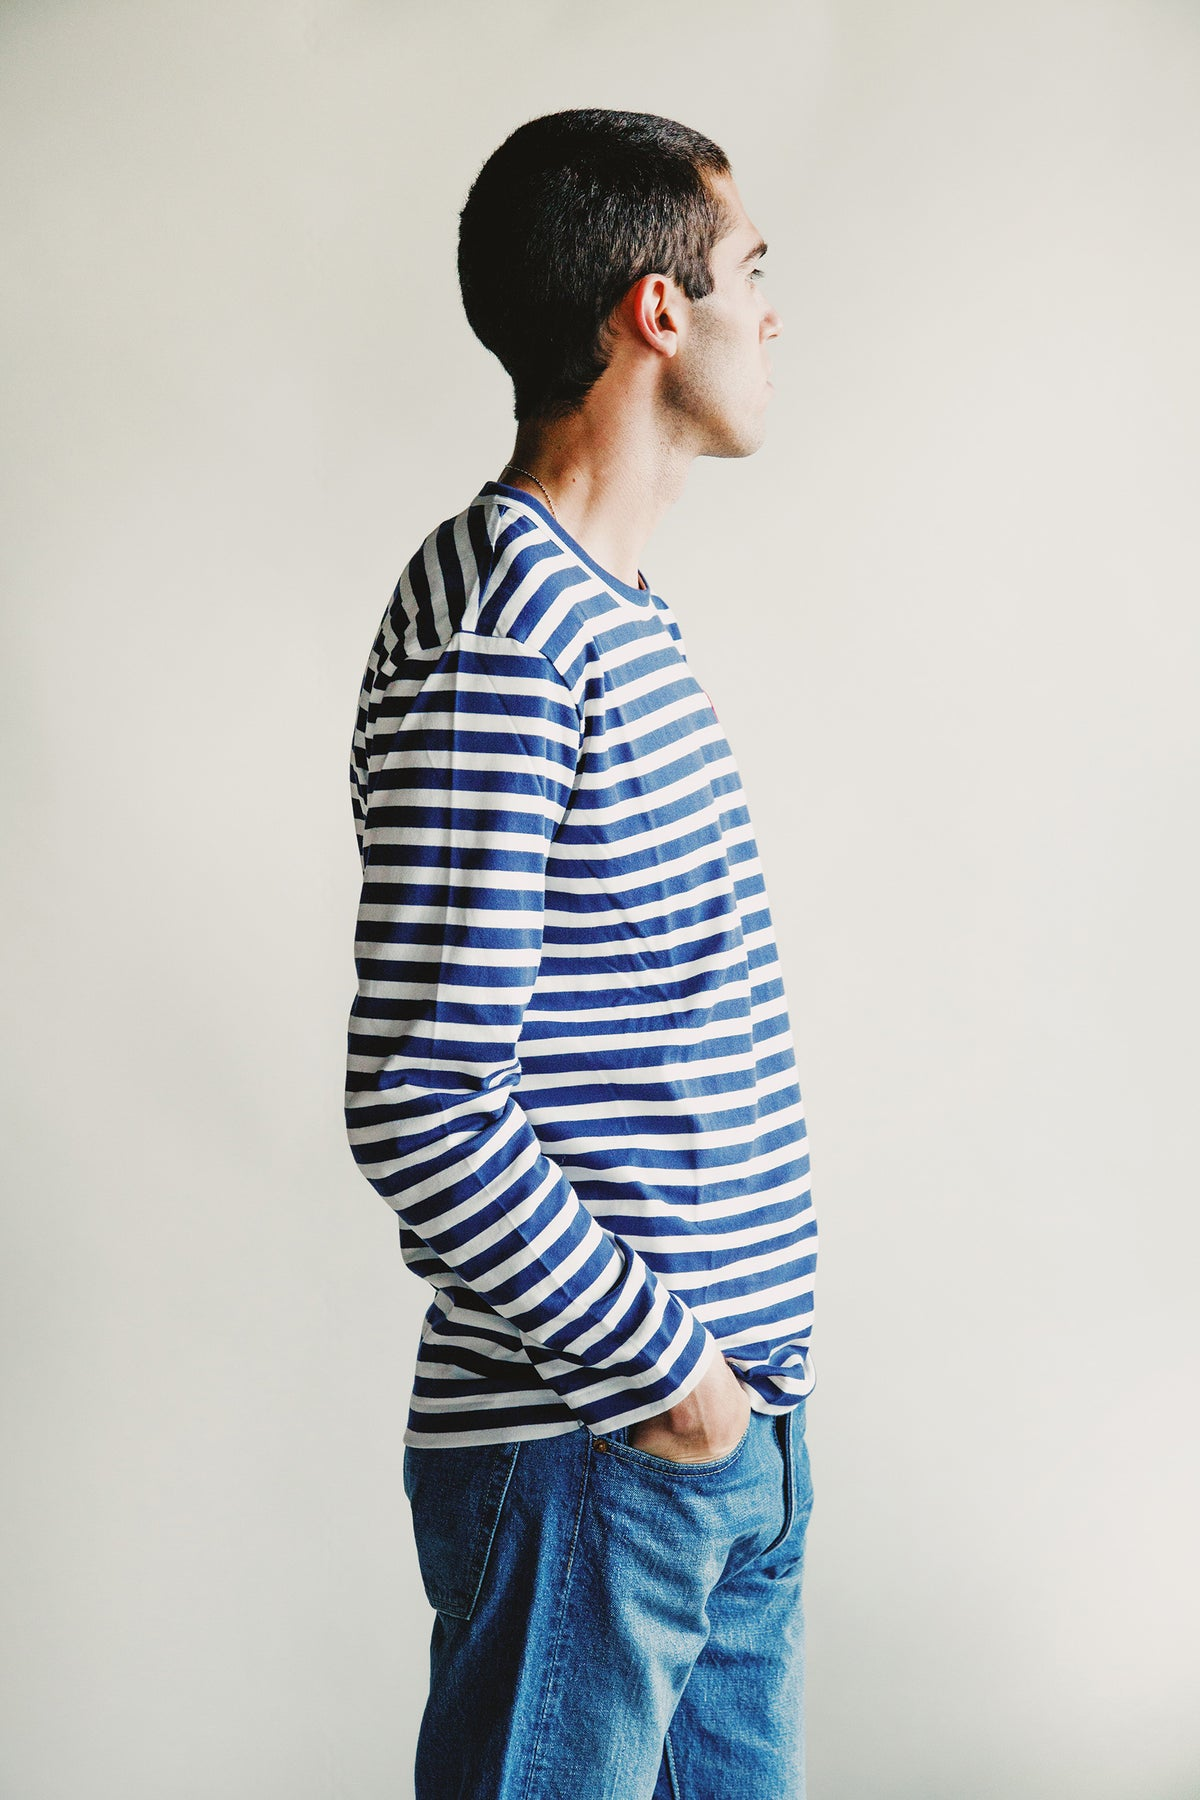 Comme des Garçons PLAY - Red Heart Striped T-Shirt - Navy/White - Canoe Club